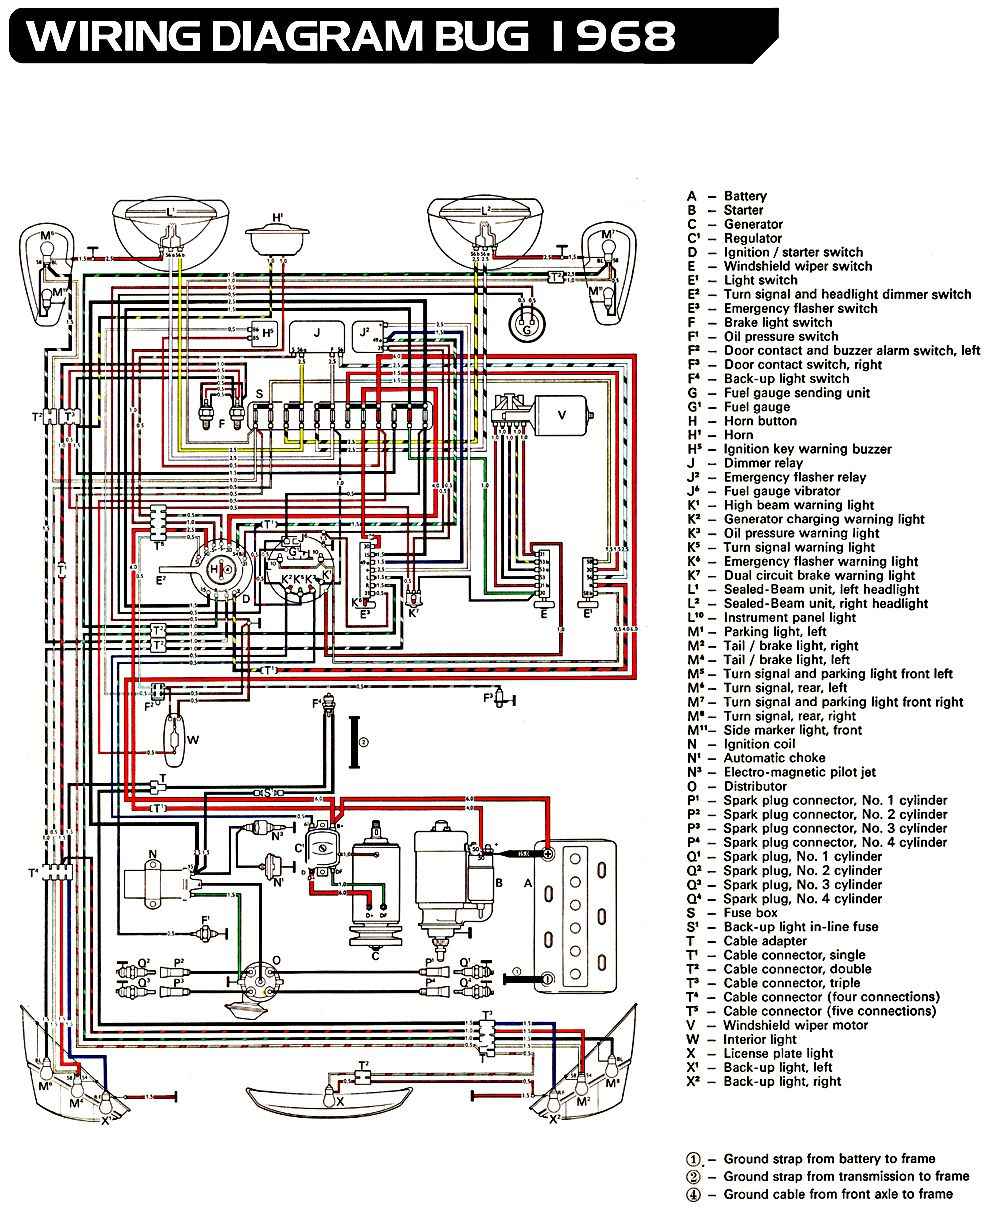 3a1908112d3826270ed5e3be362292bf vw bug ignition wiring diagram 73 vw wiring diagram free 1968 vw bug wiring diagram at aneh.co